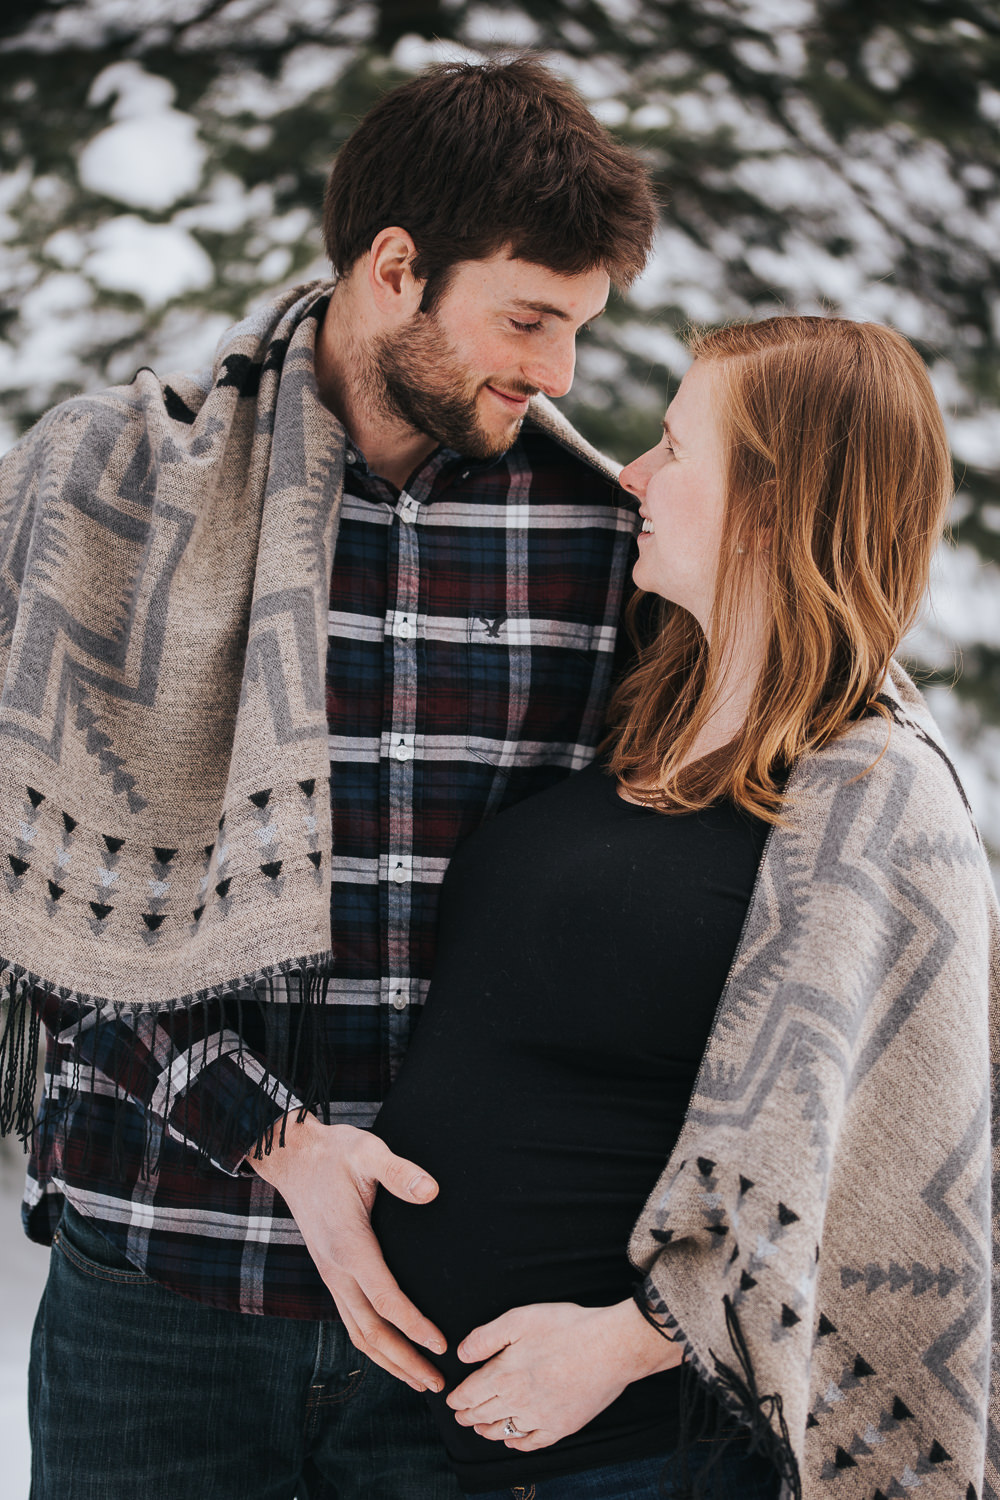 husband and wife smiling face-to-face and resting hands on pregnant mom's baby bump - Newmarket lifestyle photos